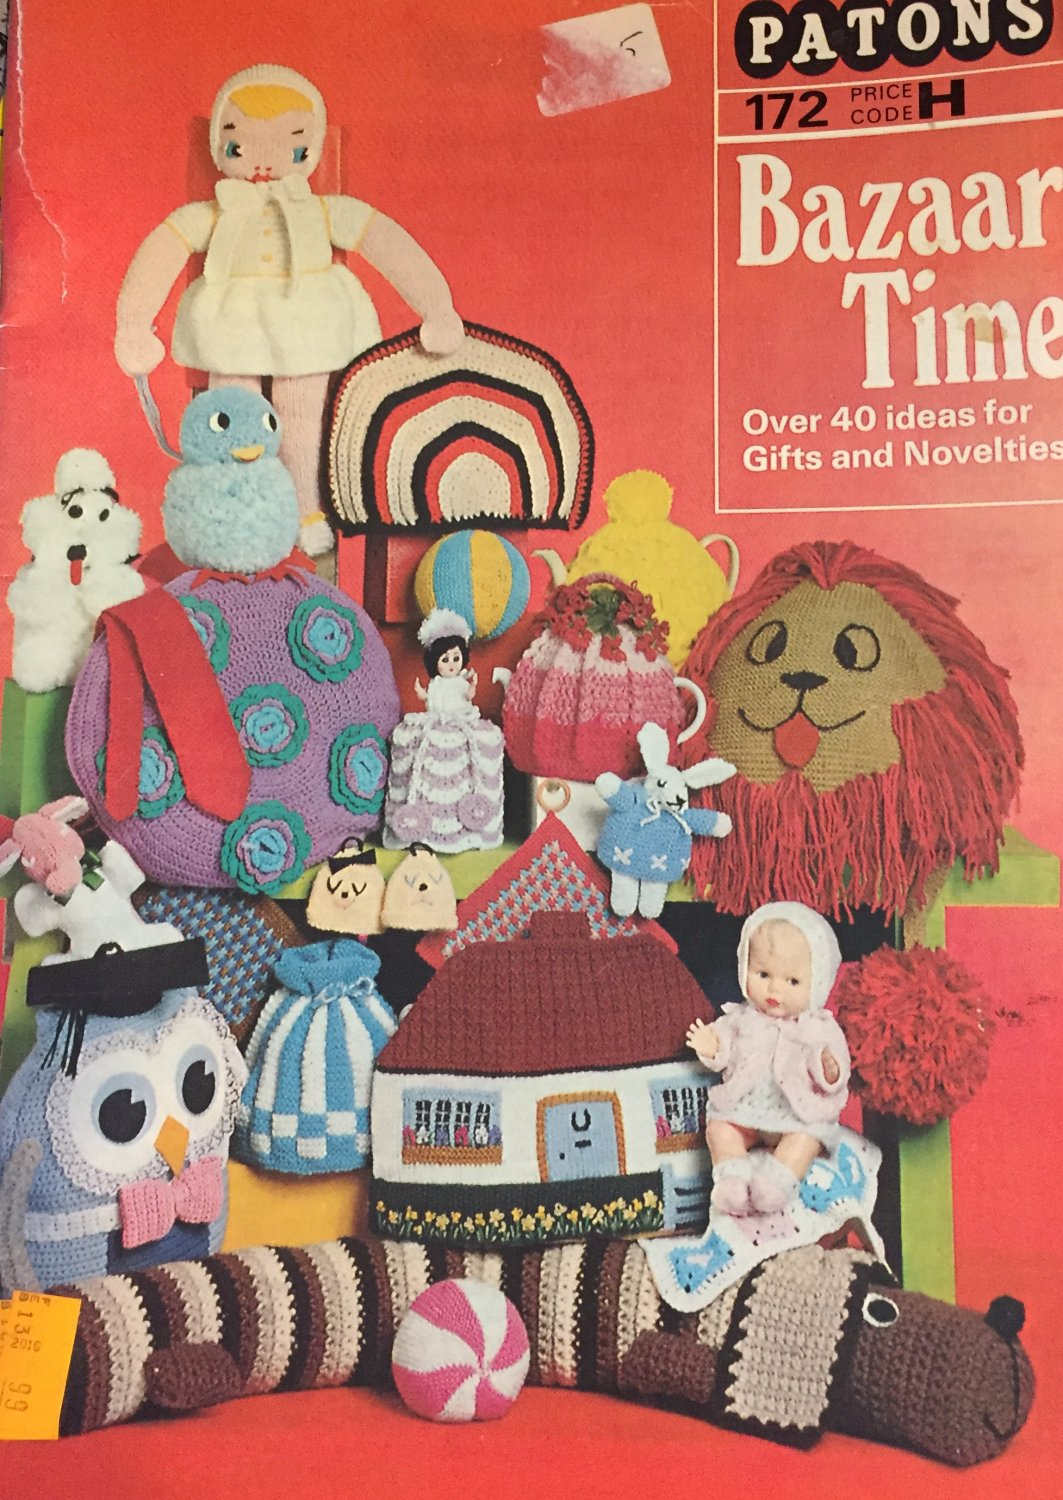 Knitting Patterns Crochet Bazaar Time Beehive Patons 172 Cozies, TIes, Toys and more